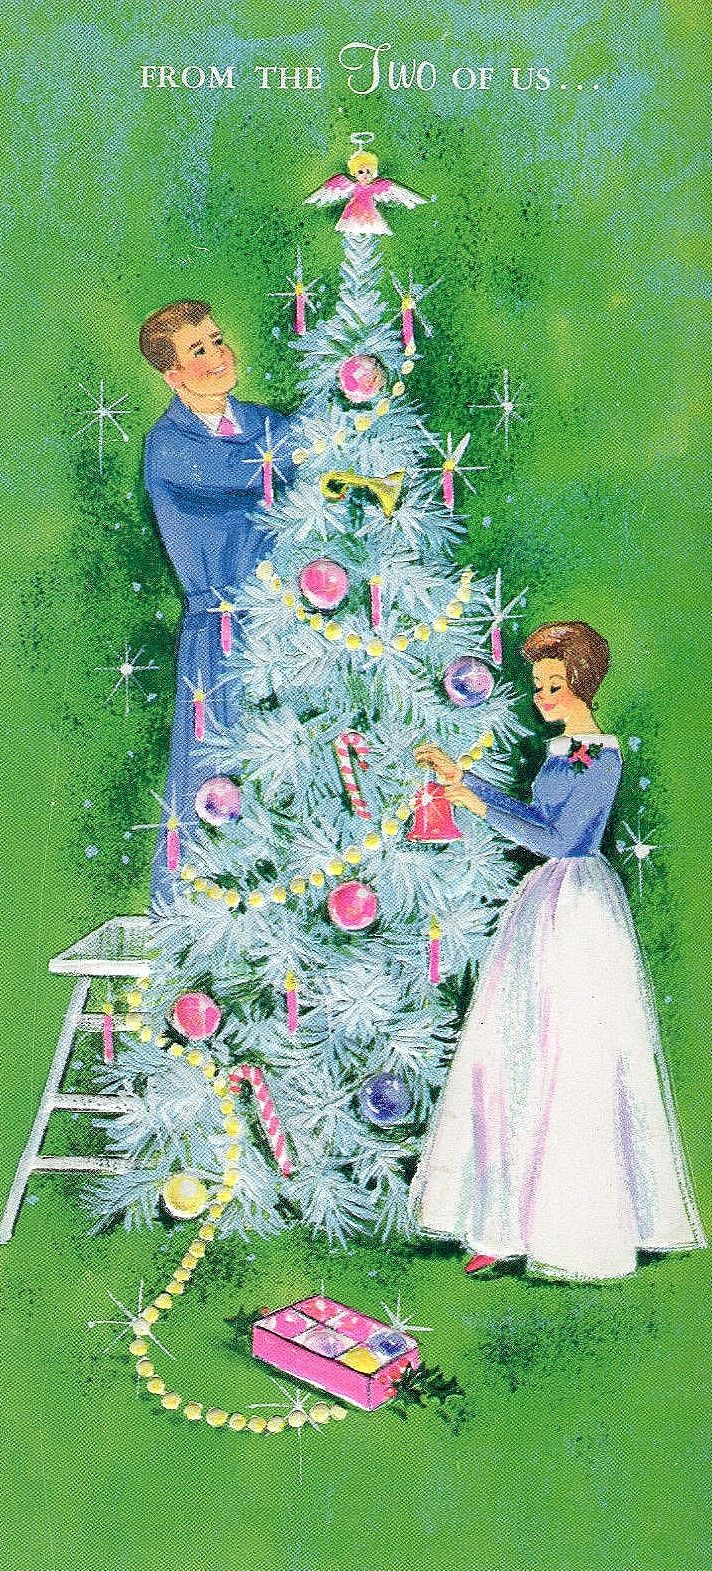 168 best ❄Trim That Tree! images on Pinterest | Merry christmas ...